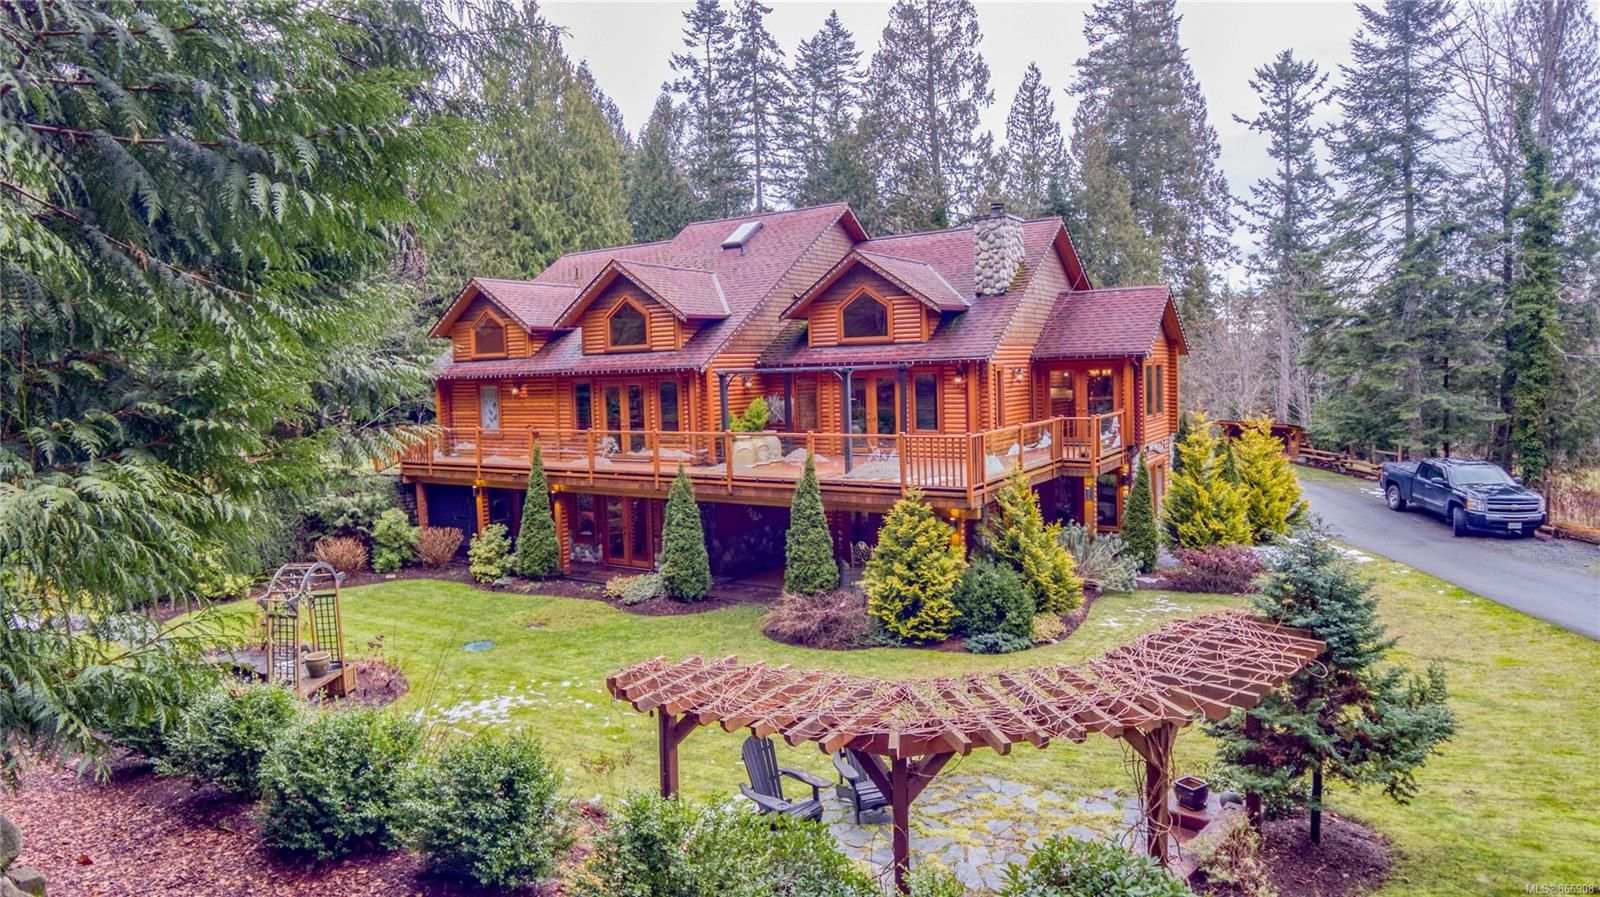 Main Photo: 11155 North Watts Rd in : Du Saltair House for sale (Duncan)  : MLS®# 866908